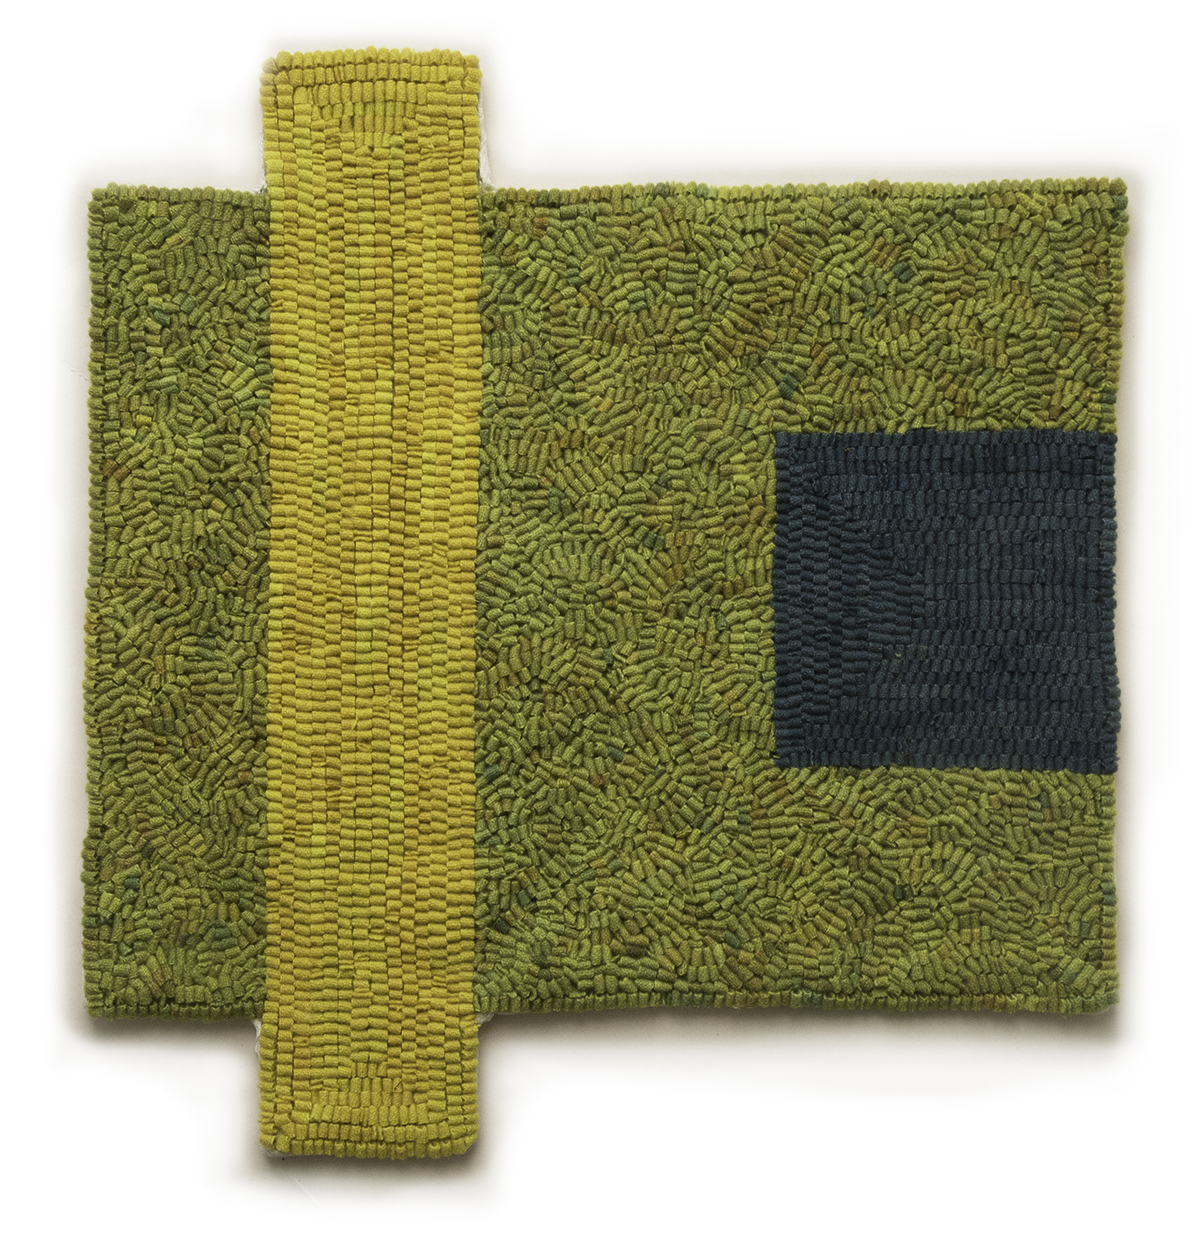 Altoon Sultan. <em>Yellow Plus Blue</em>, 2017. Hand-dyed wool on linen, 16 x 15 inches (40.6 x 38.1 cm)